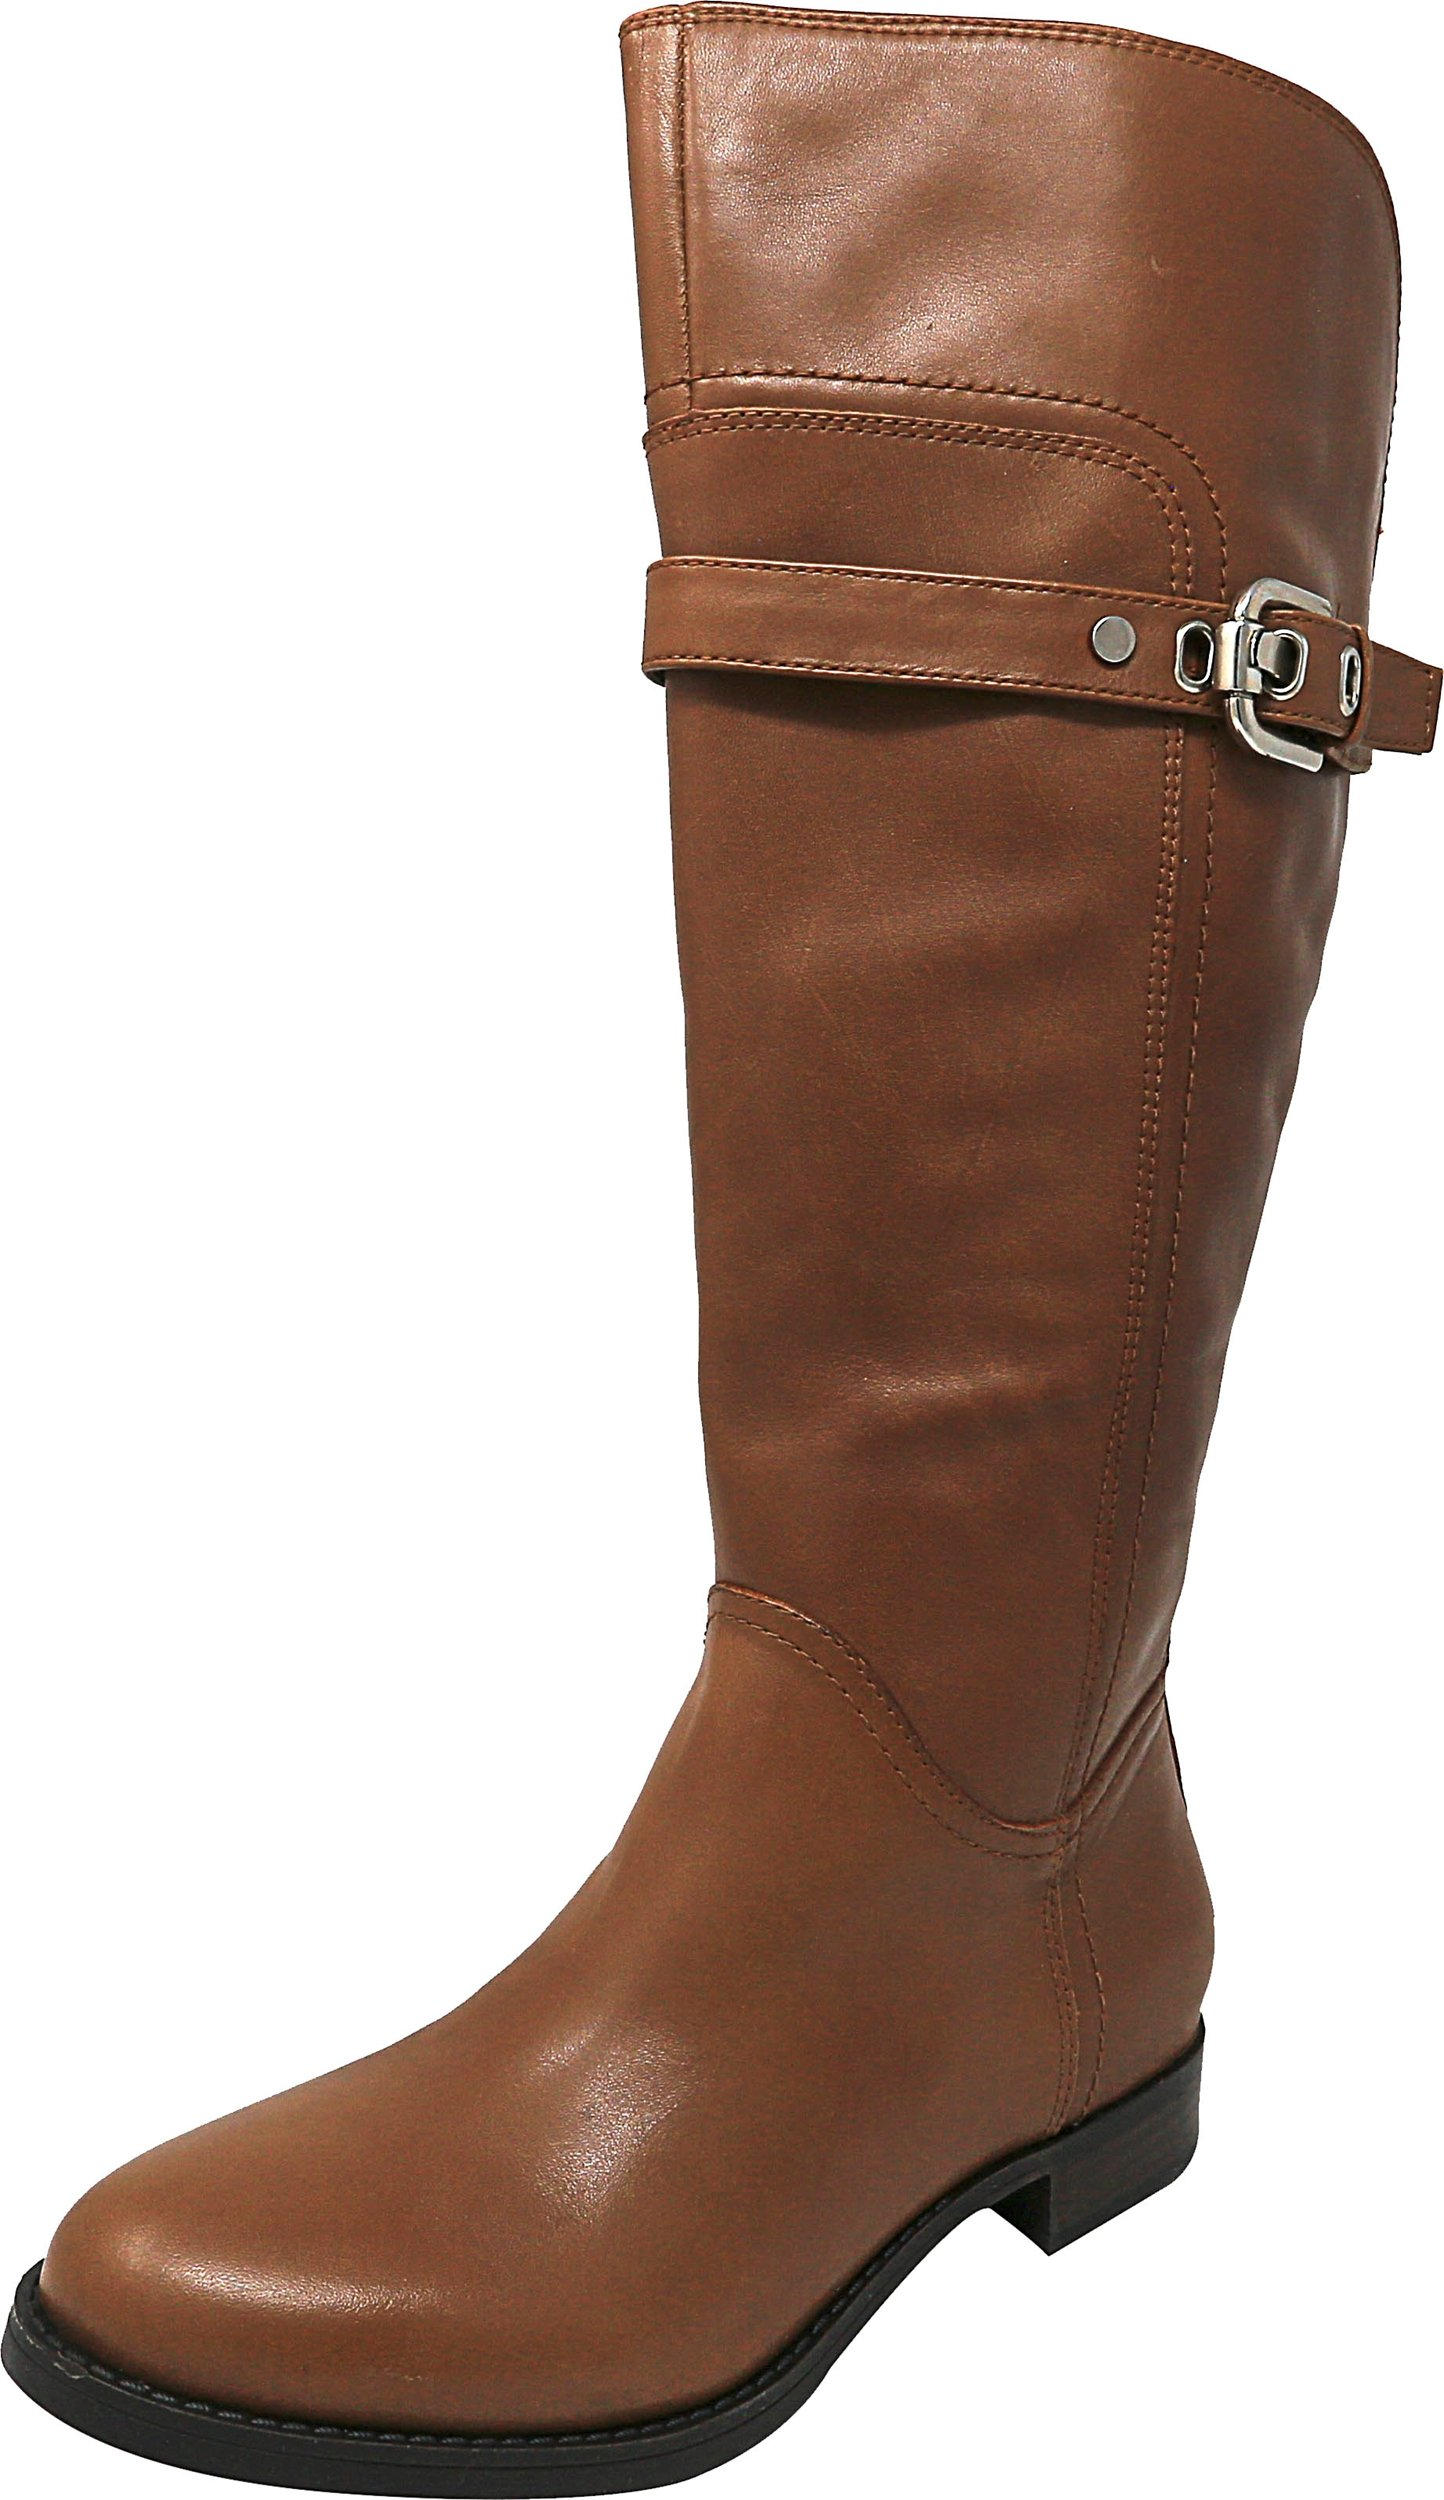 Marc Fisher Women's taite Wide Calf Leather Medium Brown Knee-High Leather Equestrian Boot - 6M